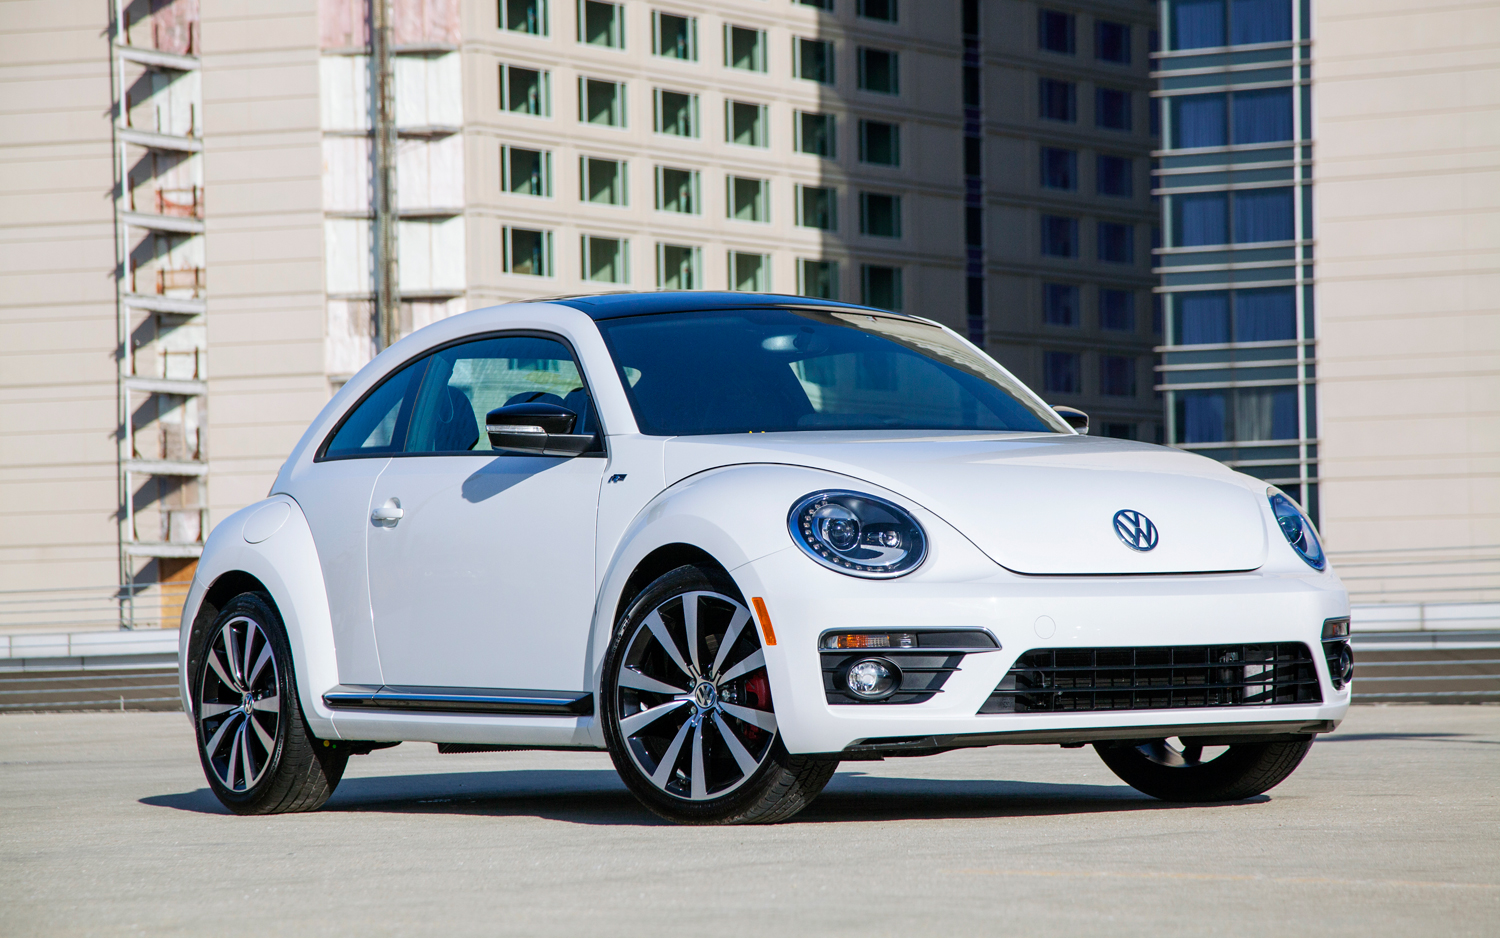 2013 Volkswagen Beetle R Line Coupe Priced At 30 930 Motortrend